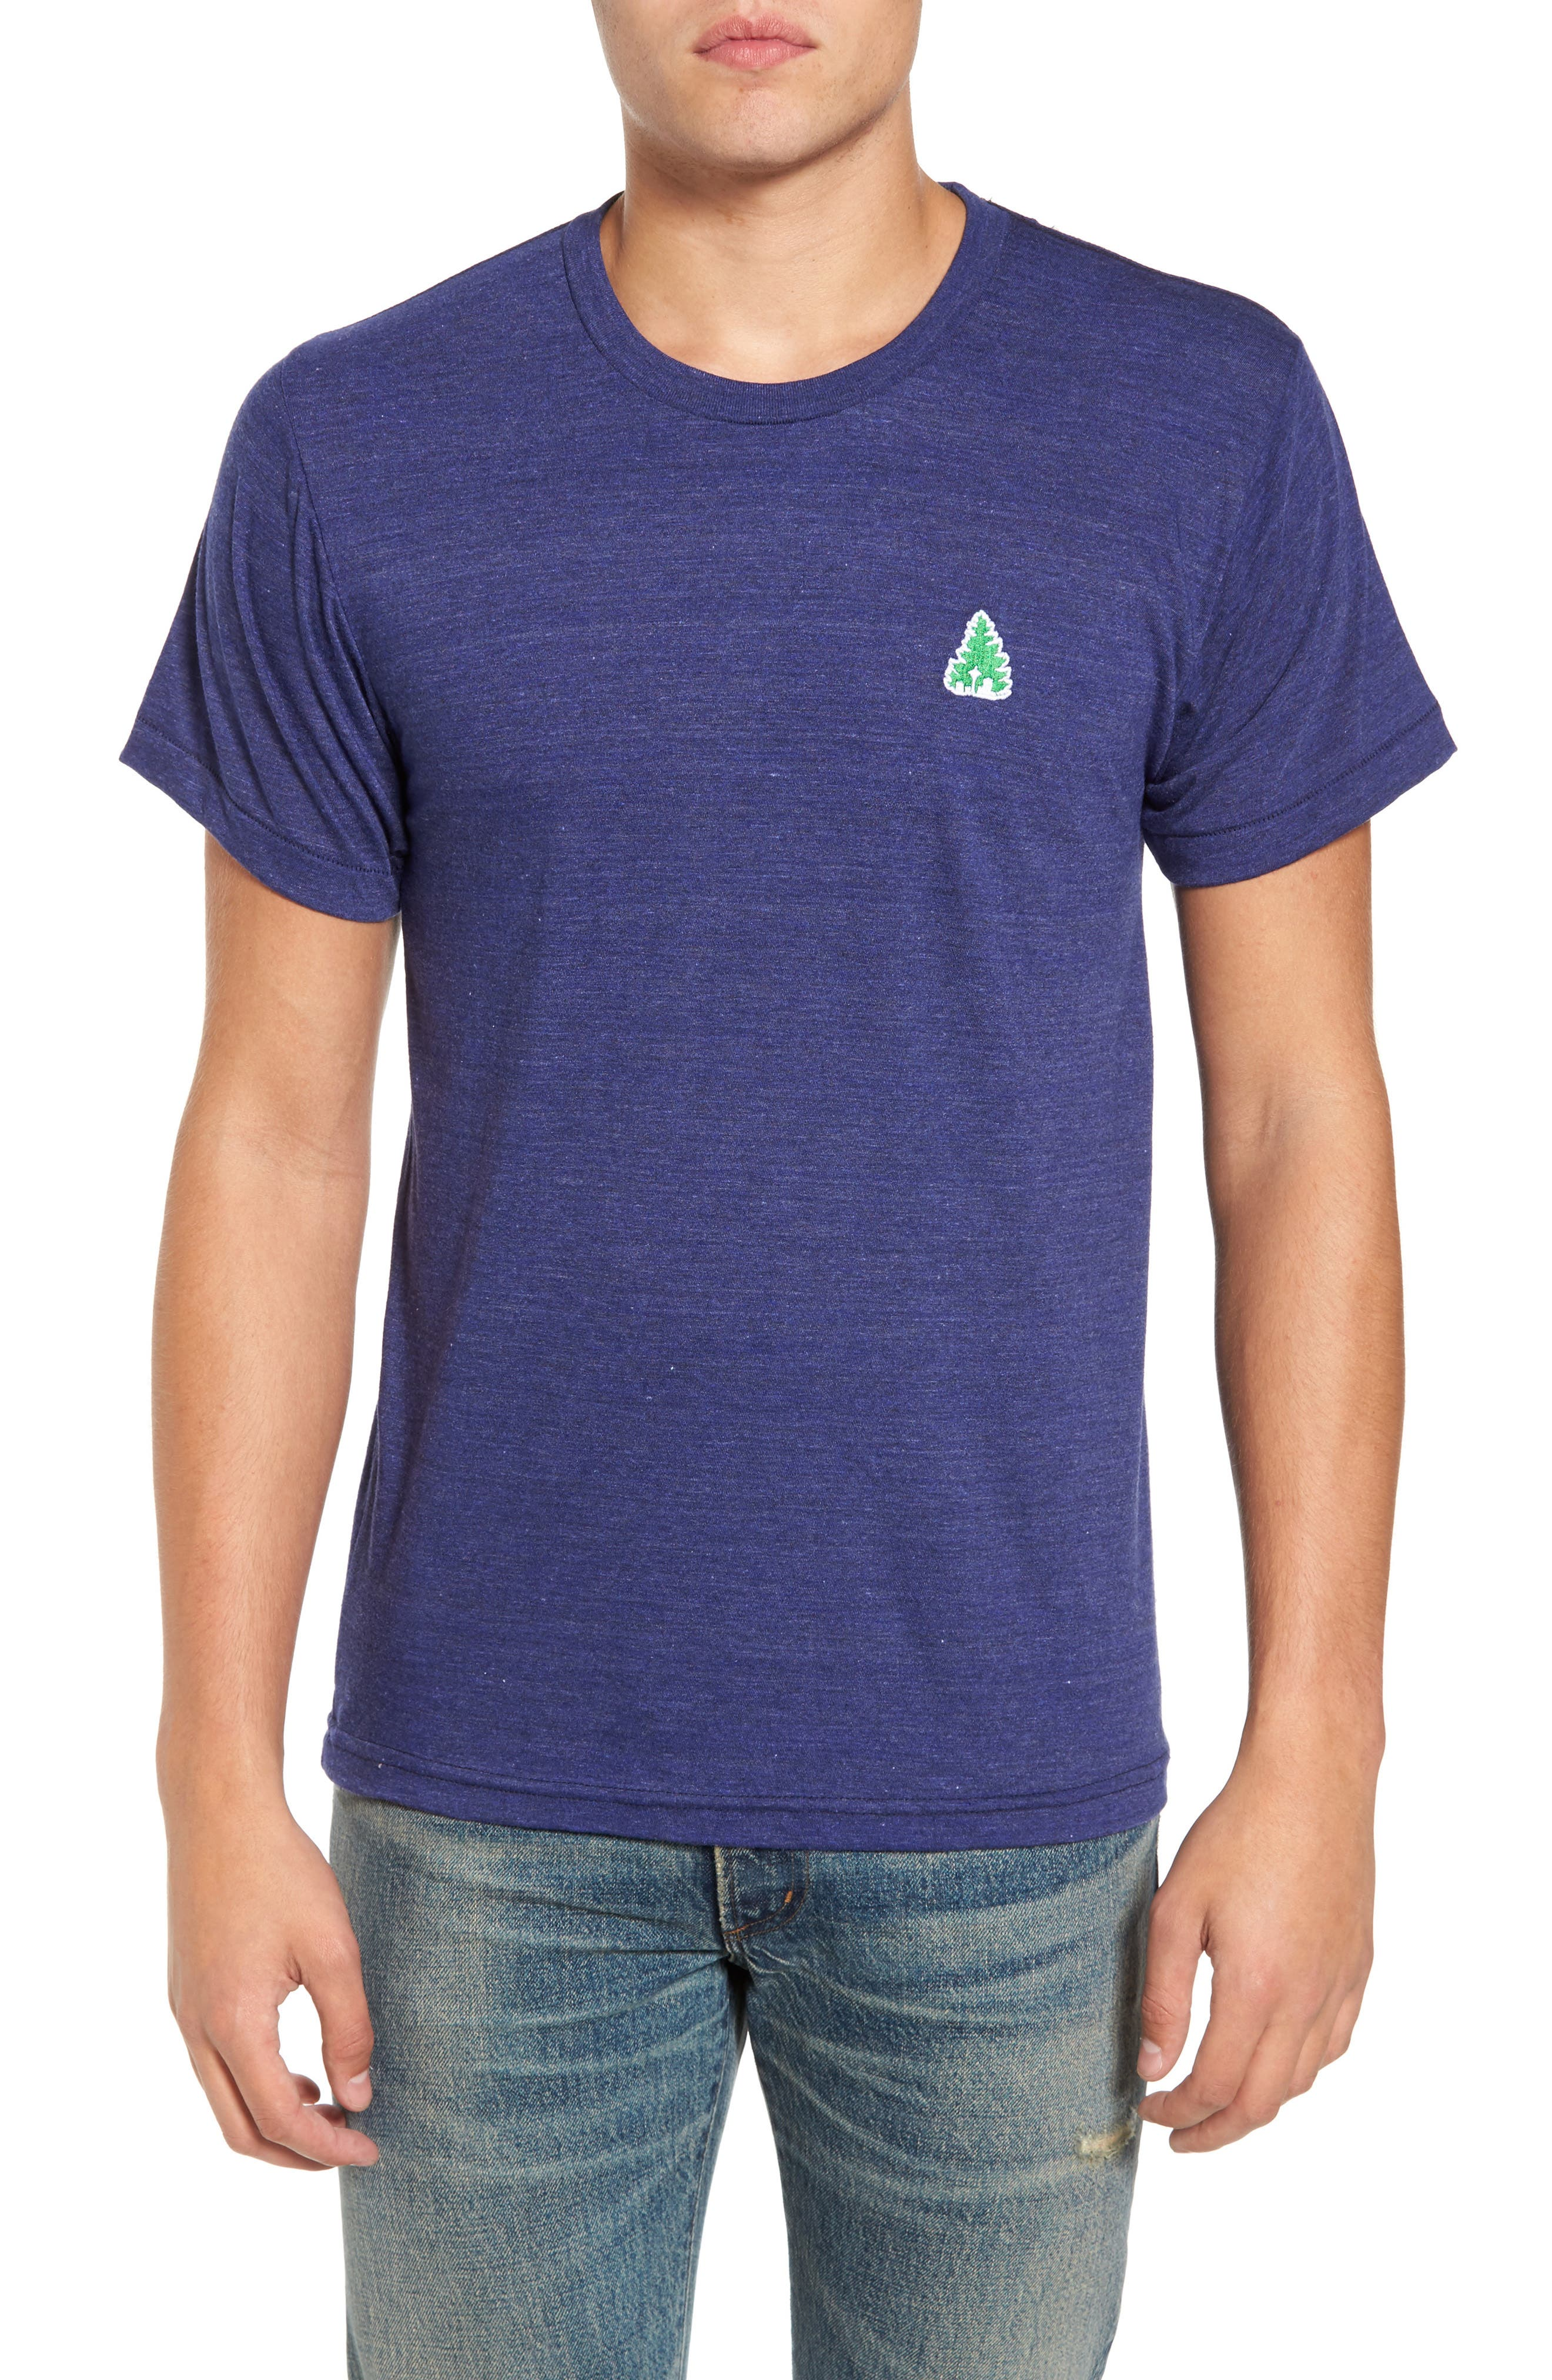 Johnny Tree Embroidered T-Shirt,                         Main,                         color, Blue